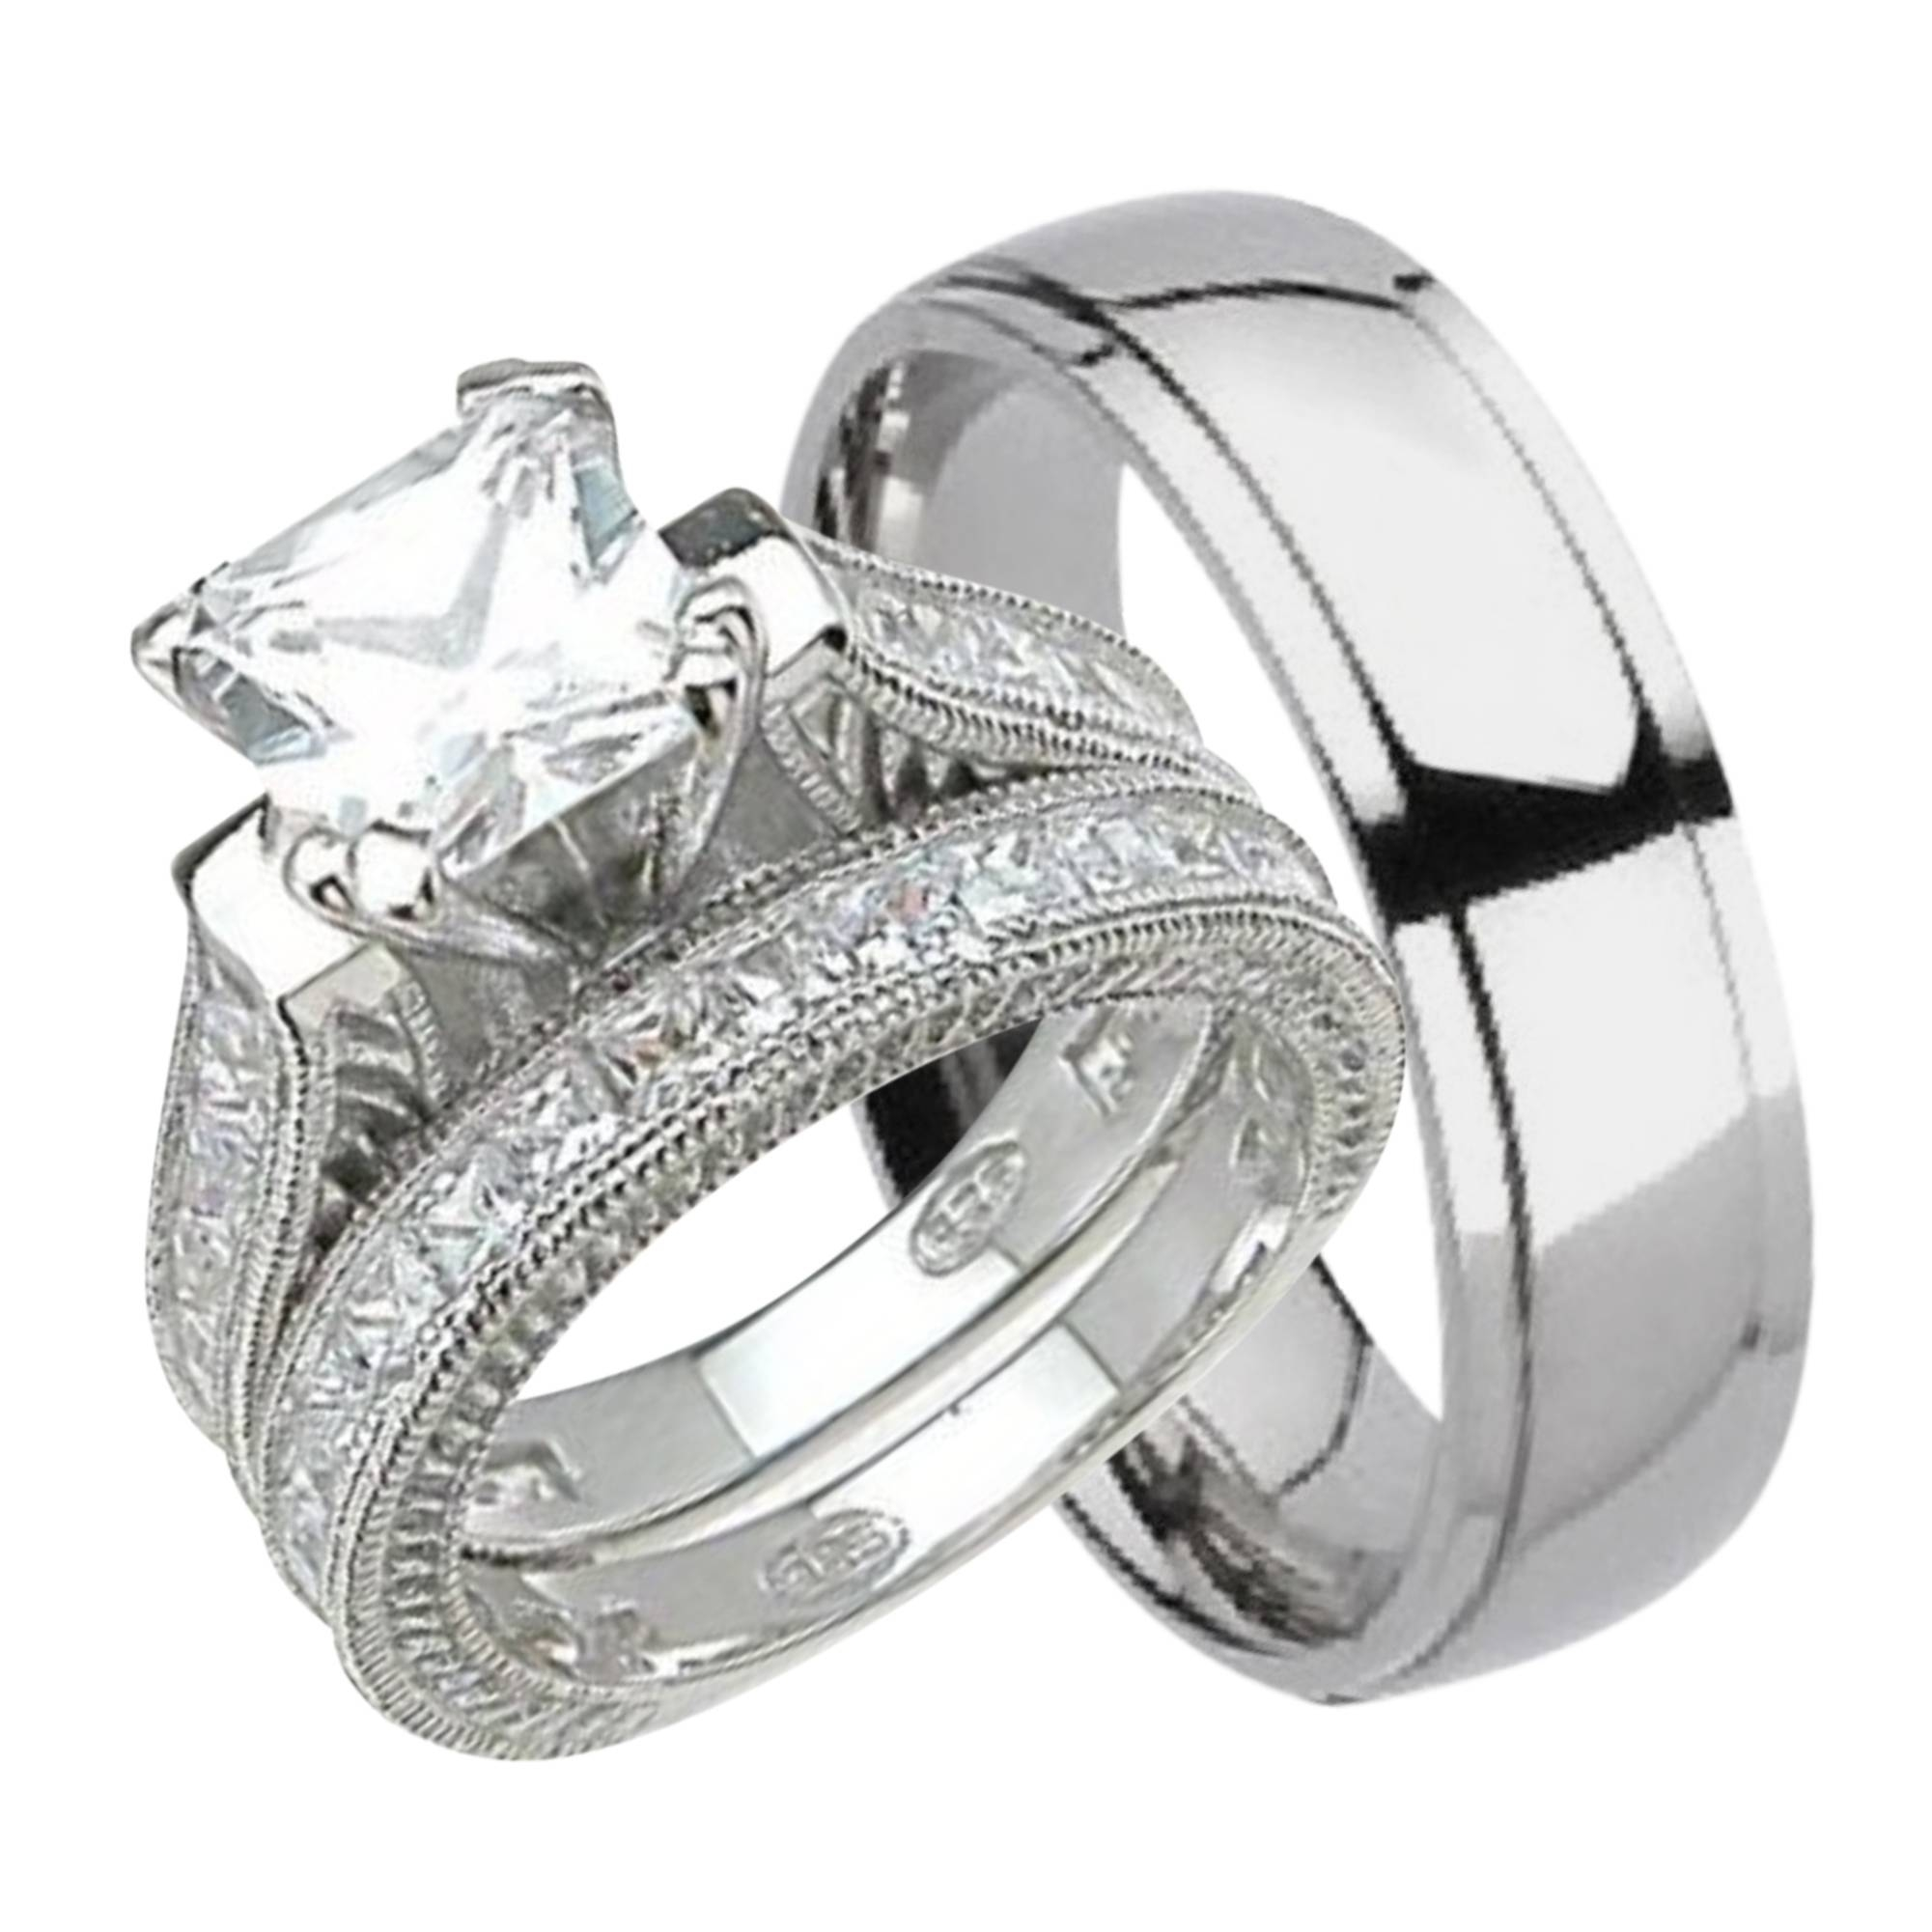 Wedding Ring Sets For Him & Her Regarding His And Her Wedding Bands Sets (View 12 of 15)